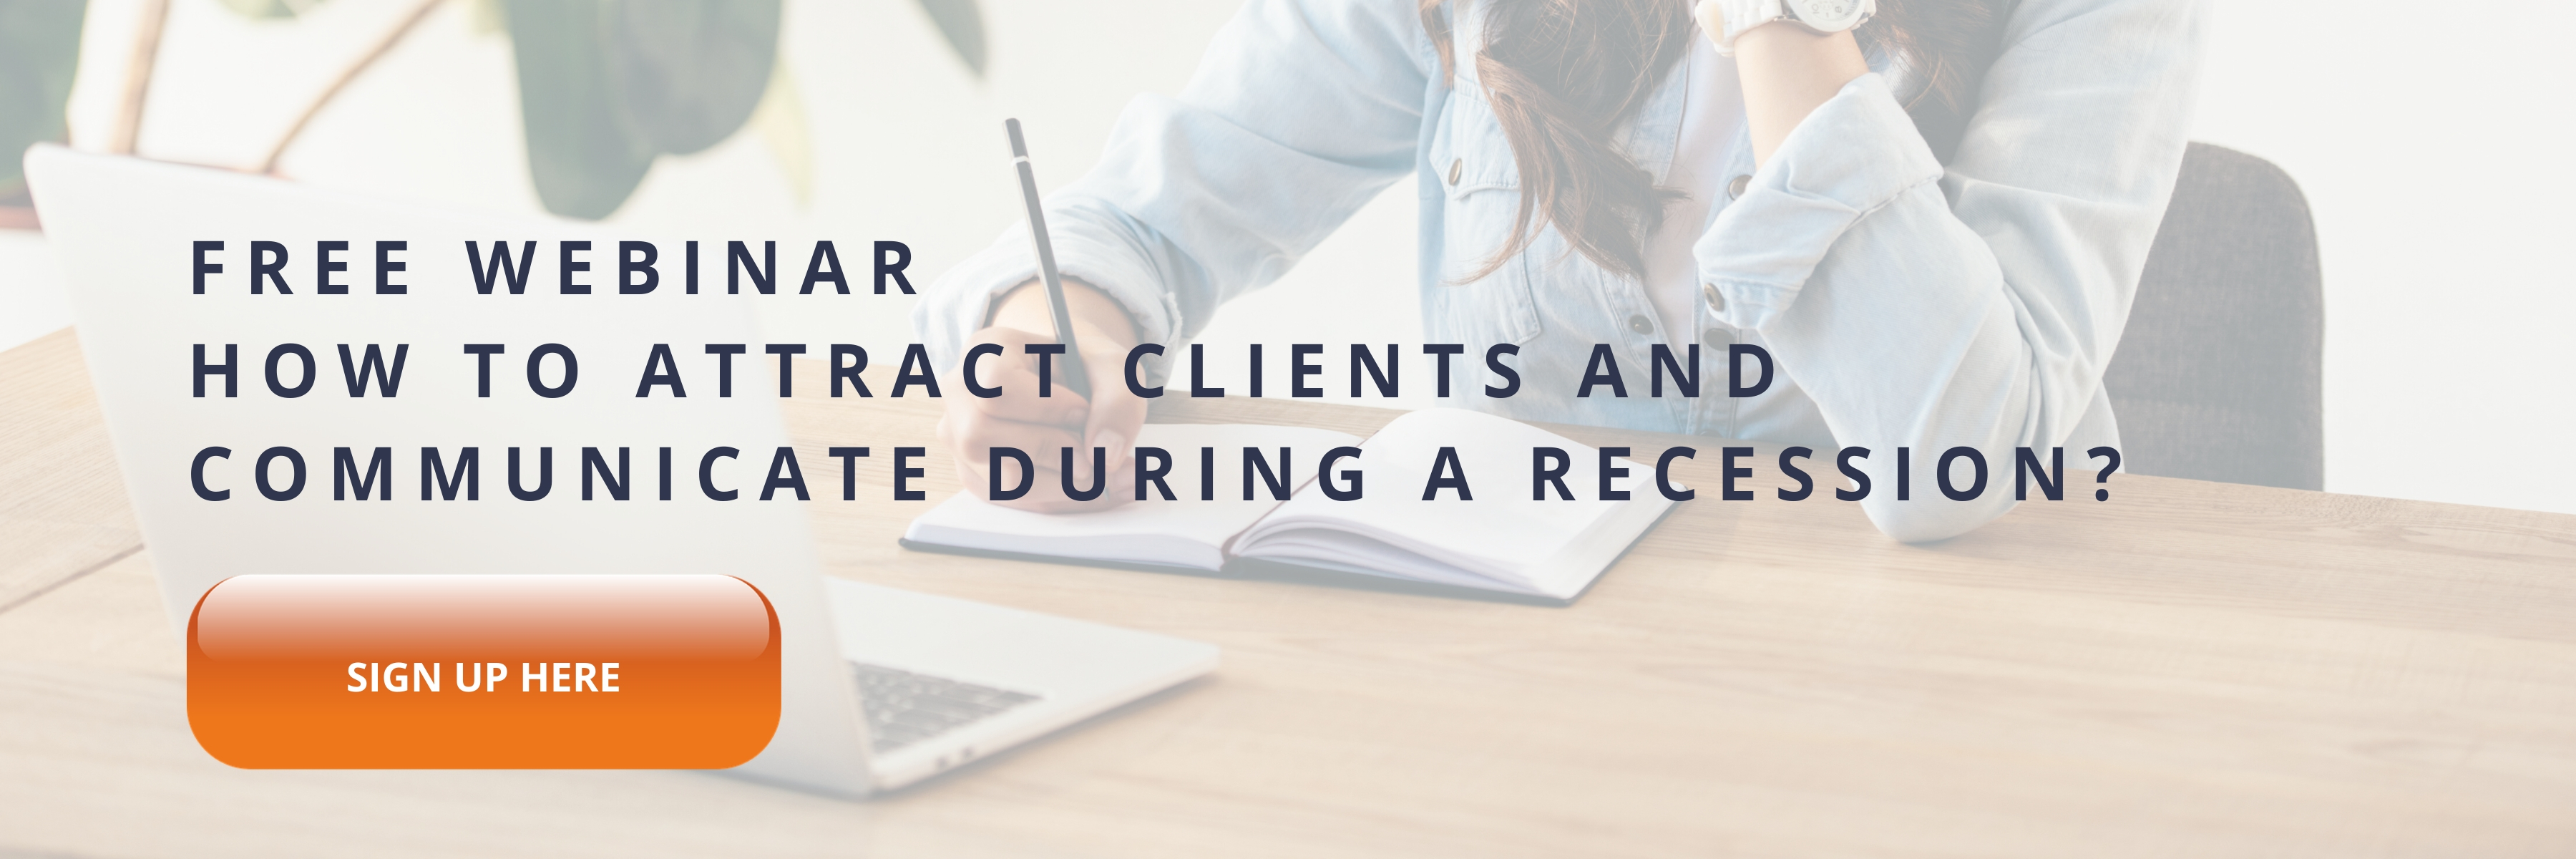 How to attract clients and communicate during a recession?